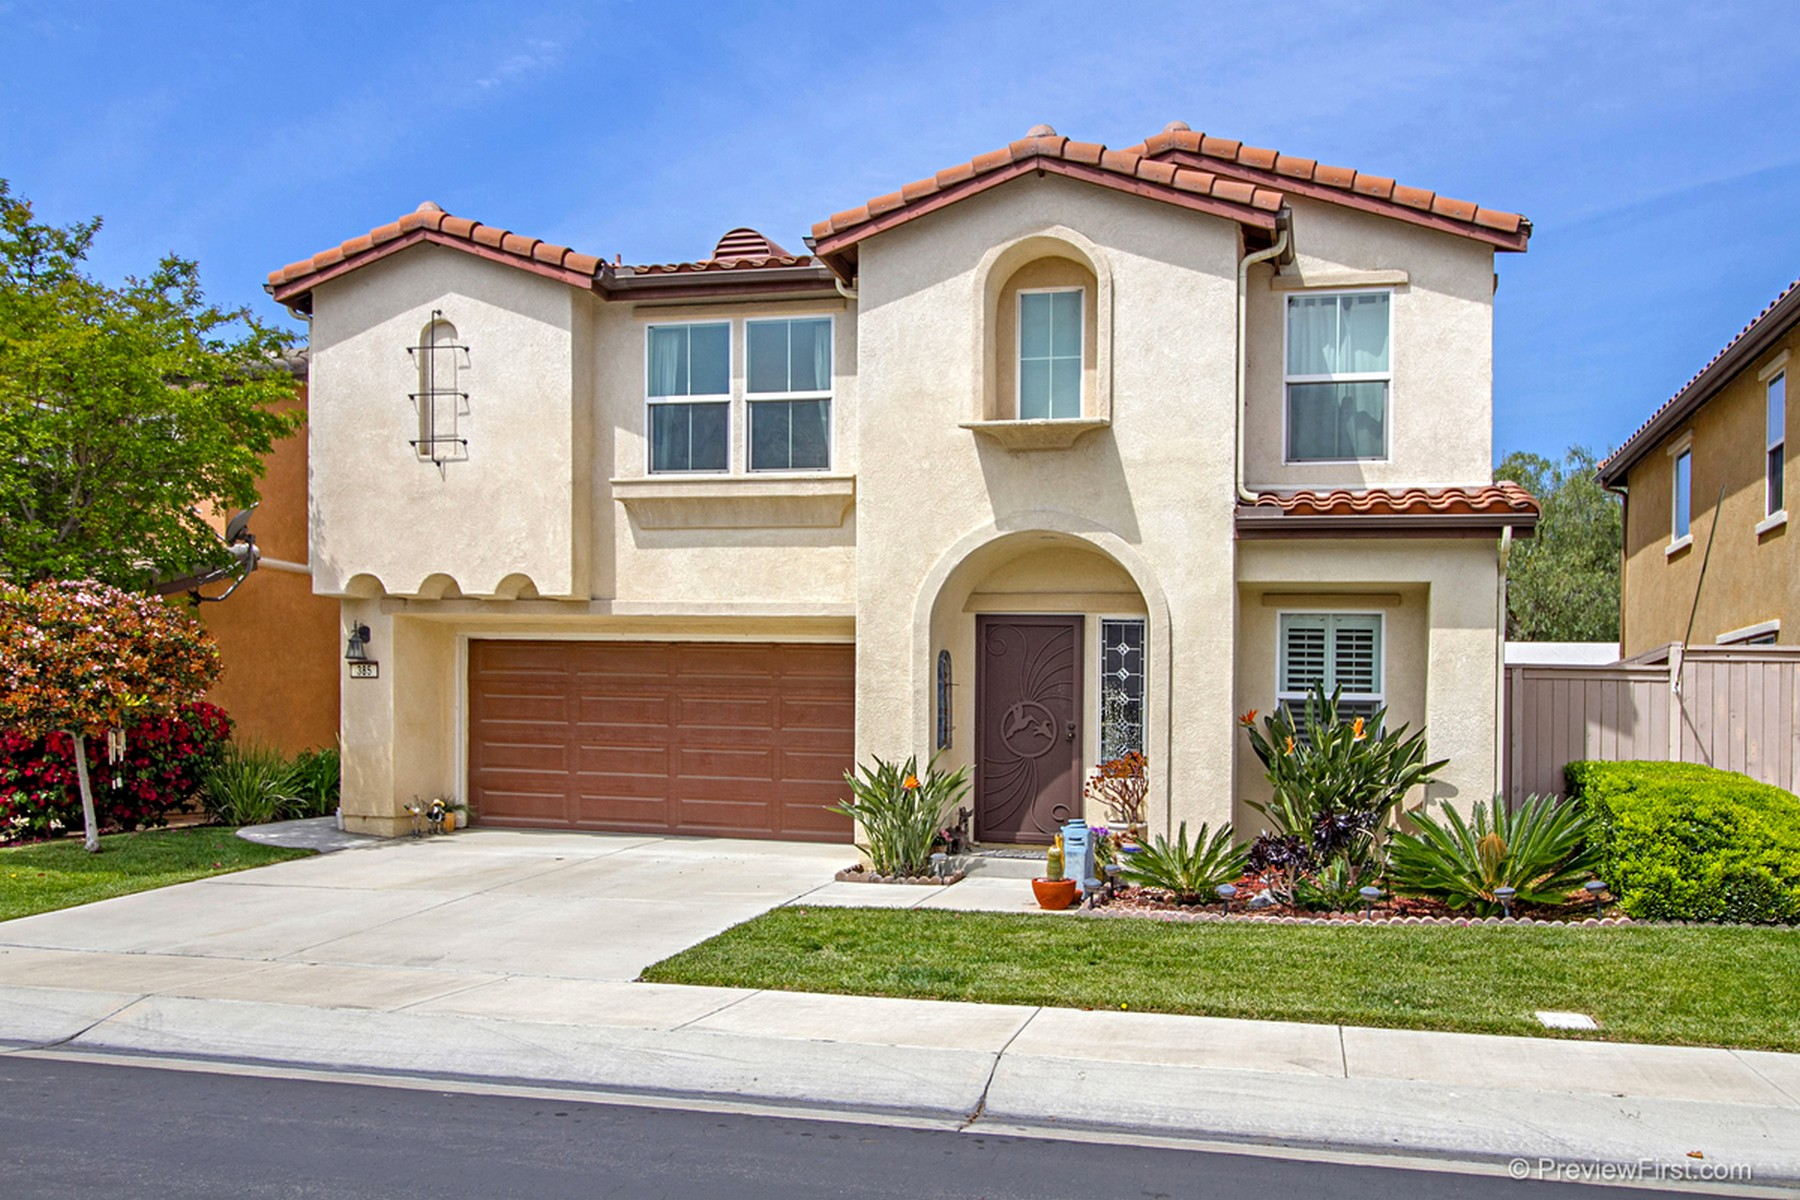 Single Family Home for Sale at 385 Franciscan Way Oceanside, California, 92057 United States